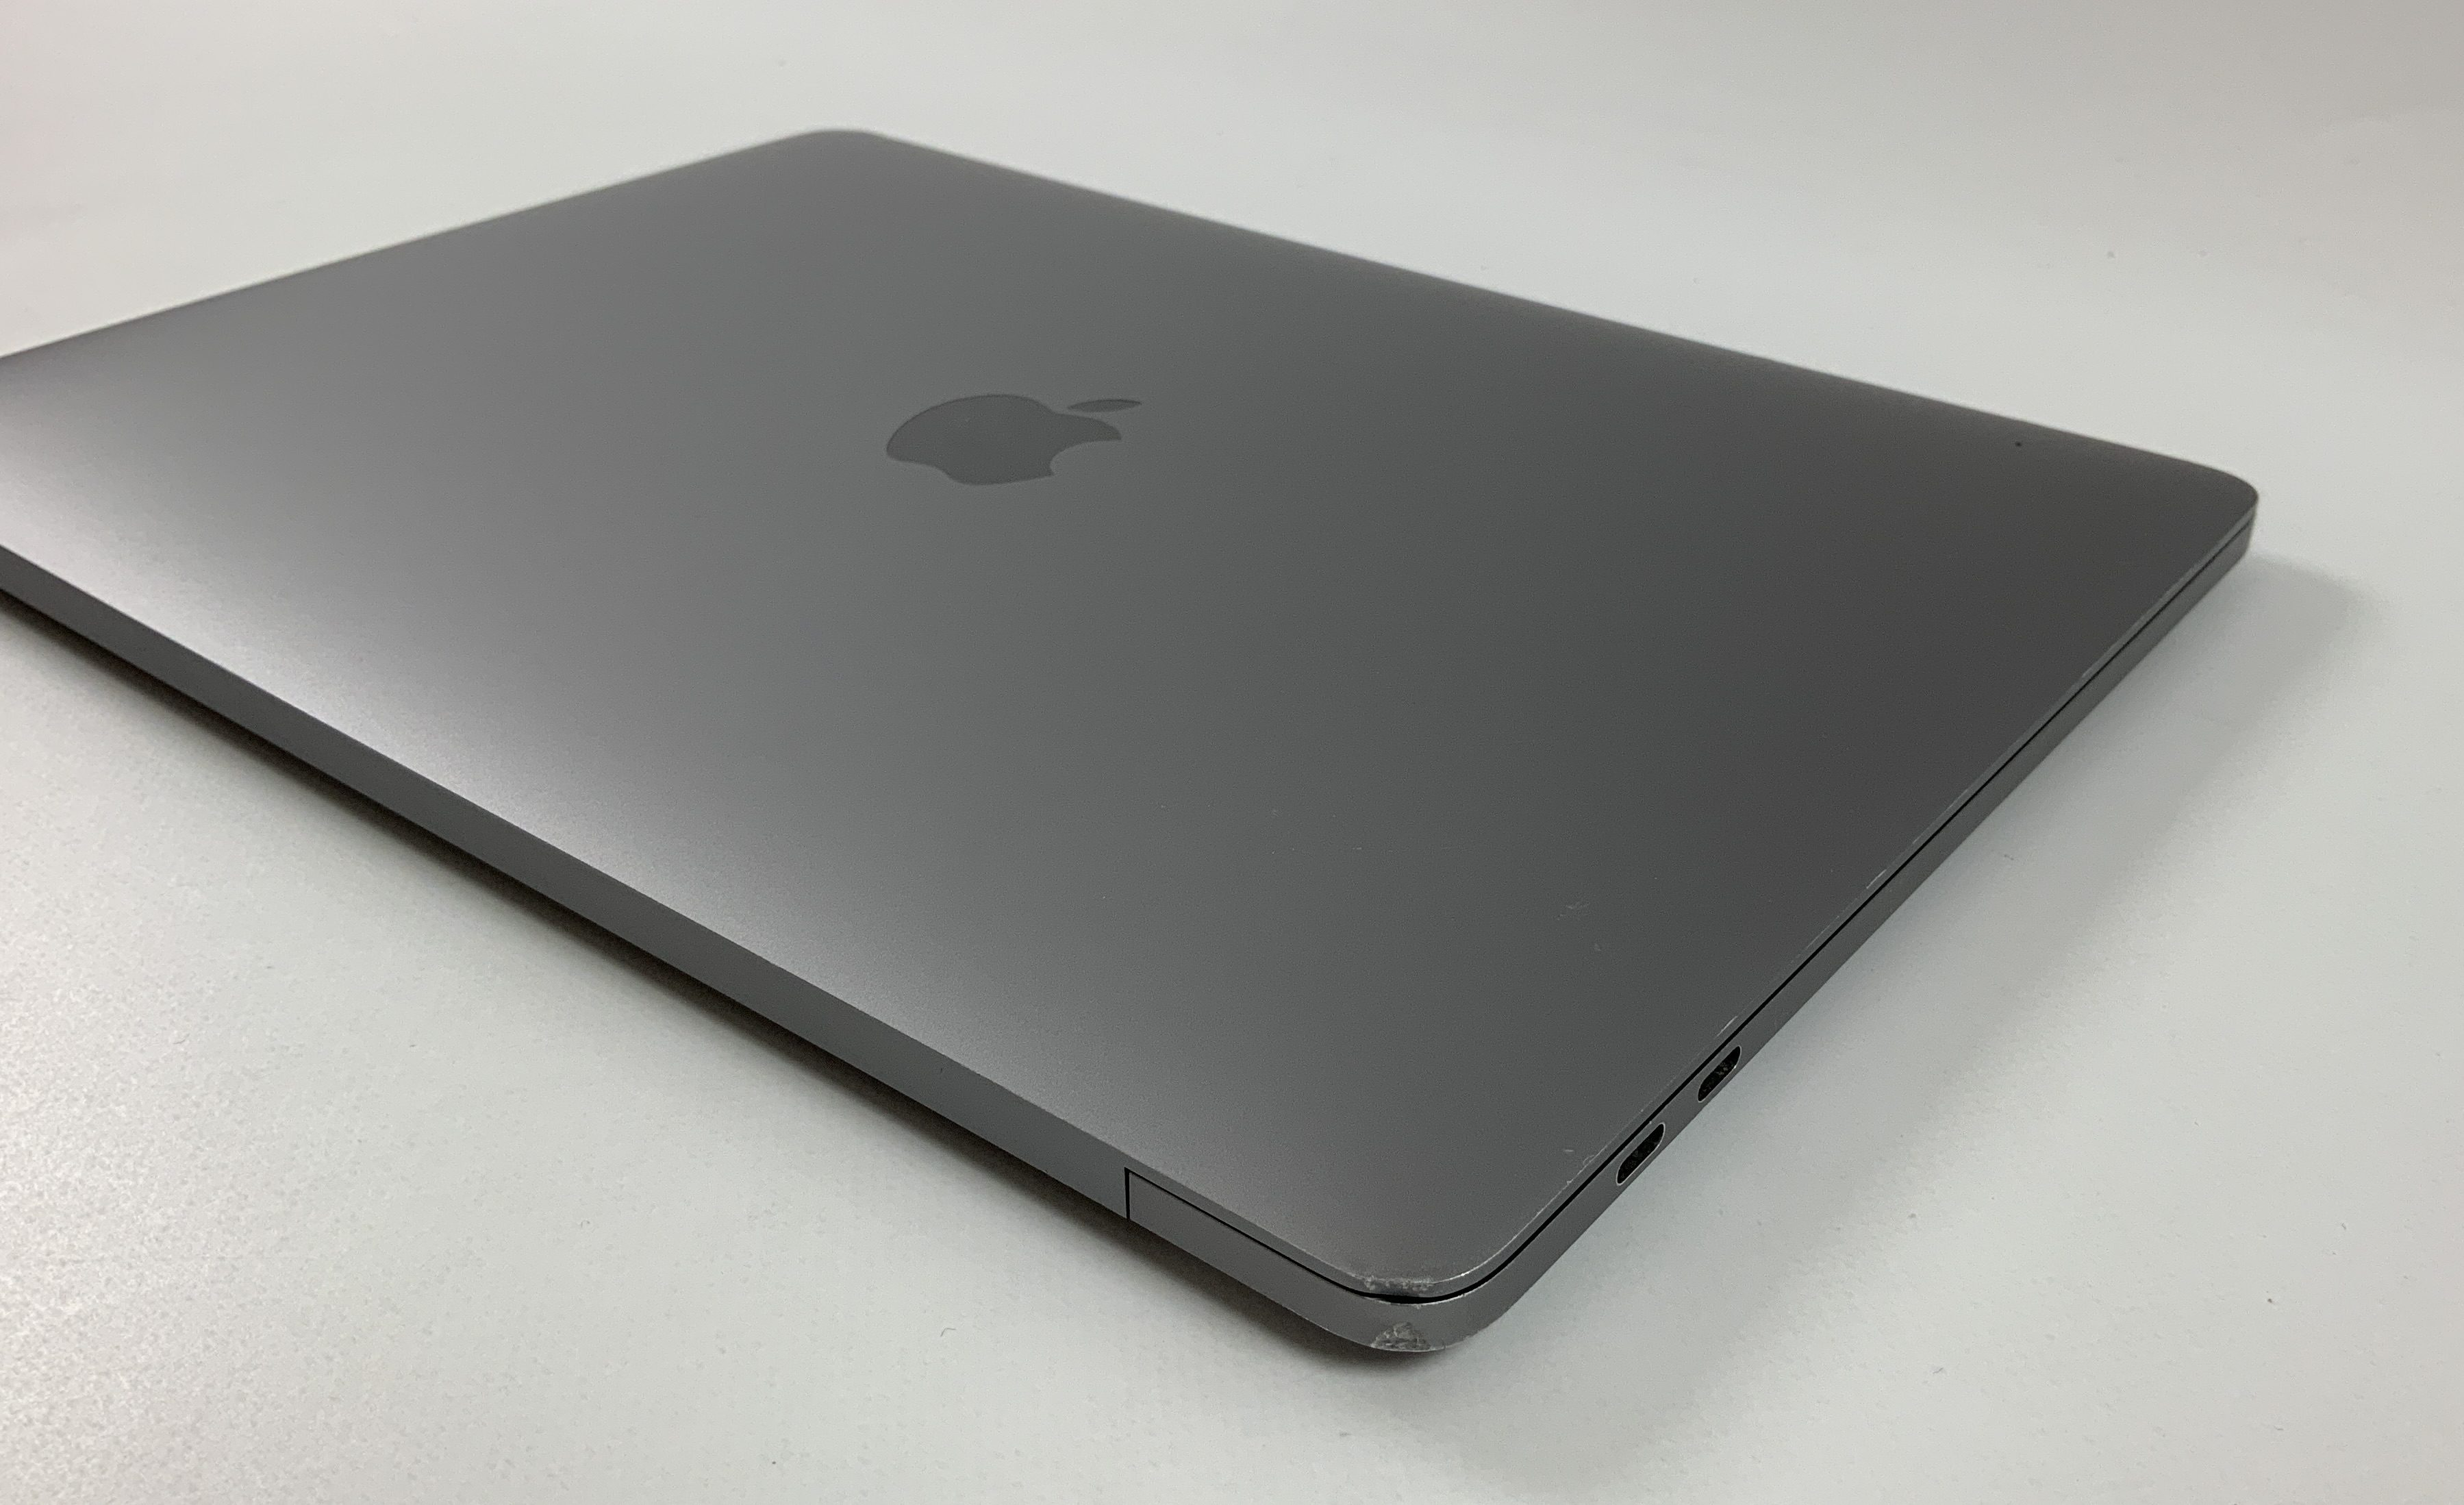 "MacBook Pro 13"" 4TBT Late 2016 (Intel Core i5 2.9 GHz 8 GB RAM 256 GB SSD), Space Gray, Intel Core i5 2.9 GHz, 8 GB RAM, 256 GB SSD, Bild 3"